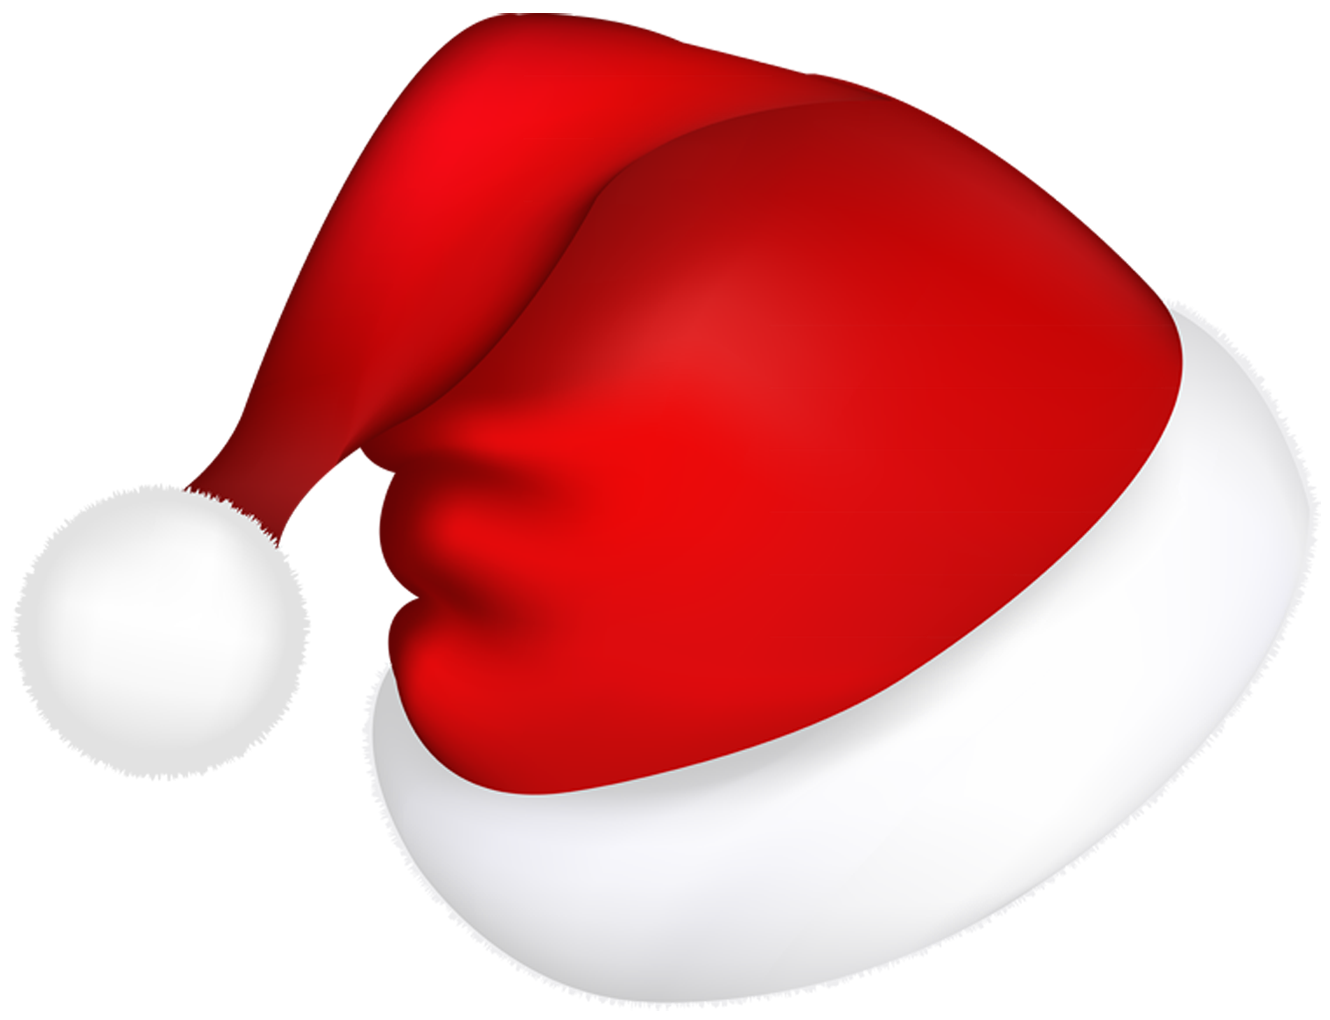 santa hat clipart with transparent background - photo #9